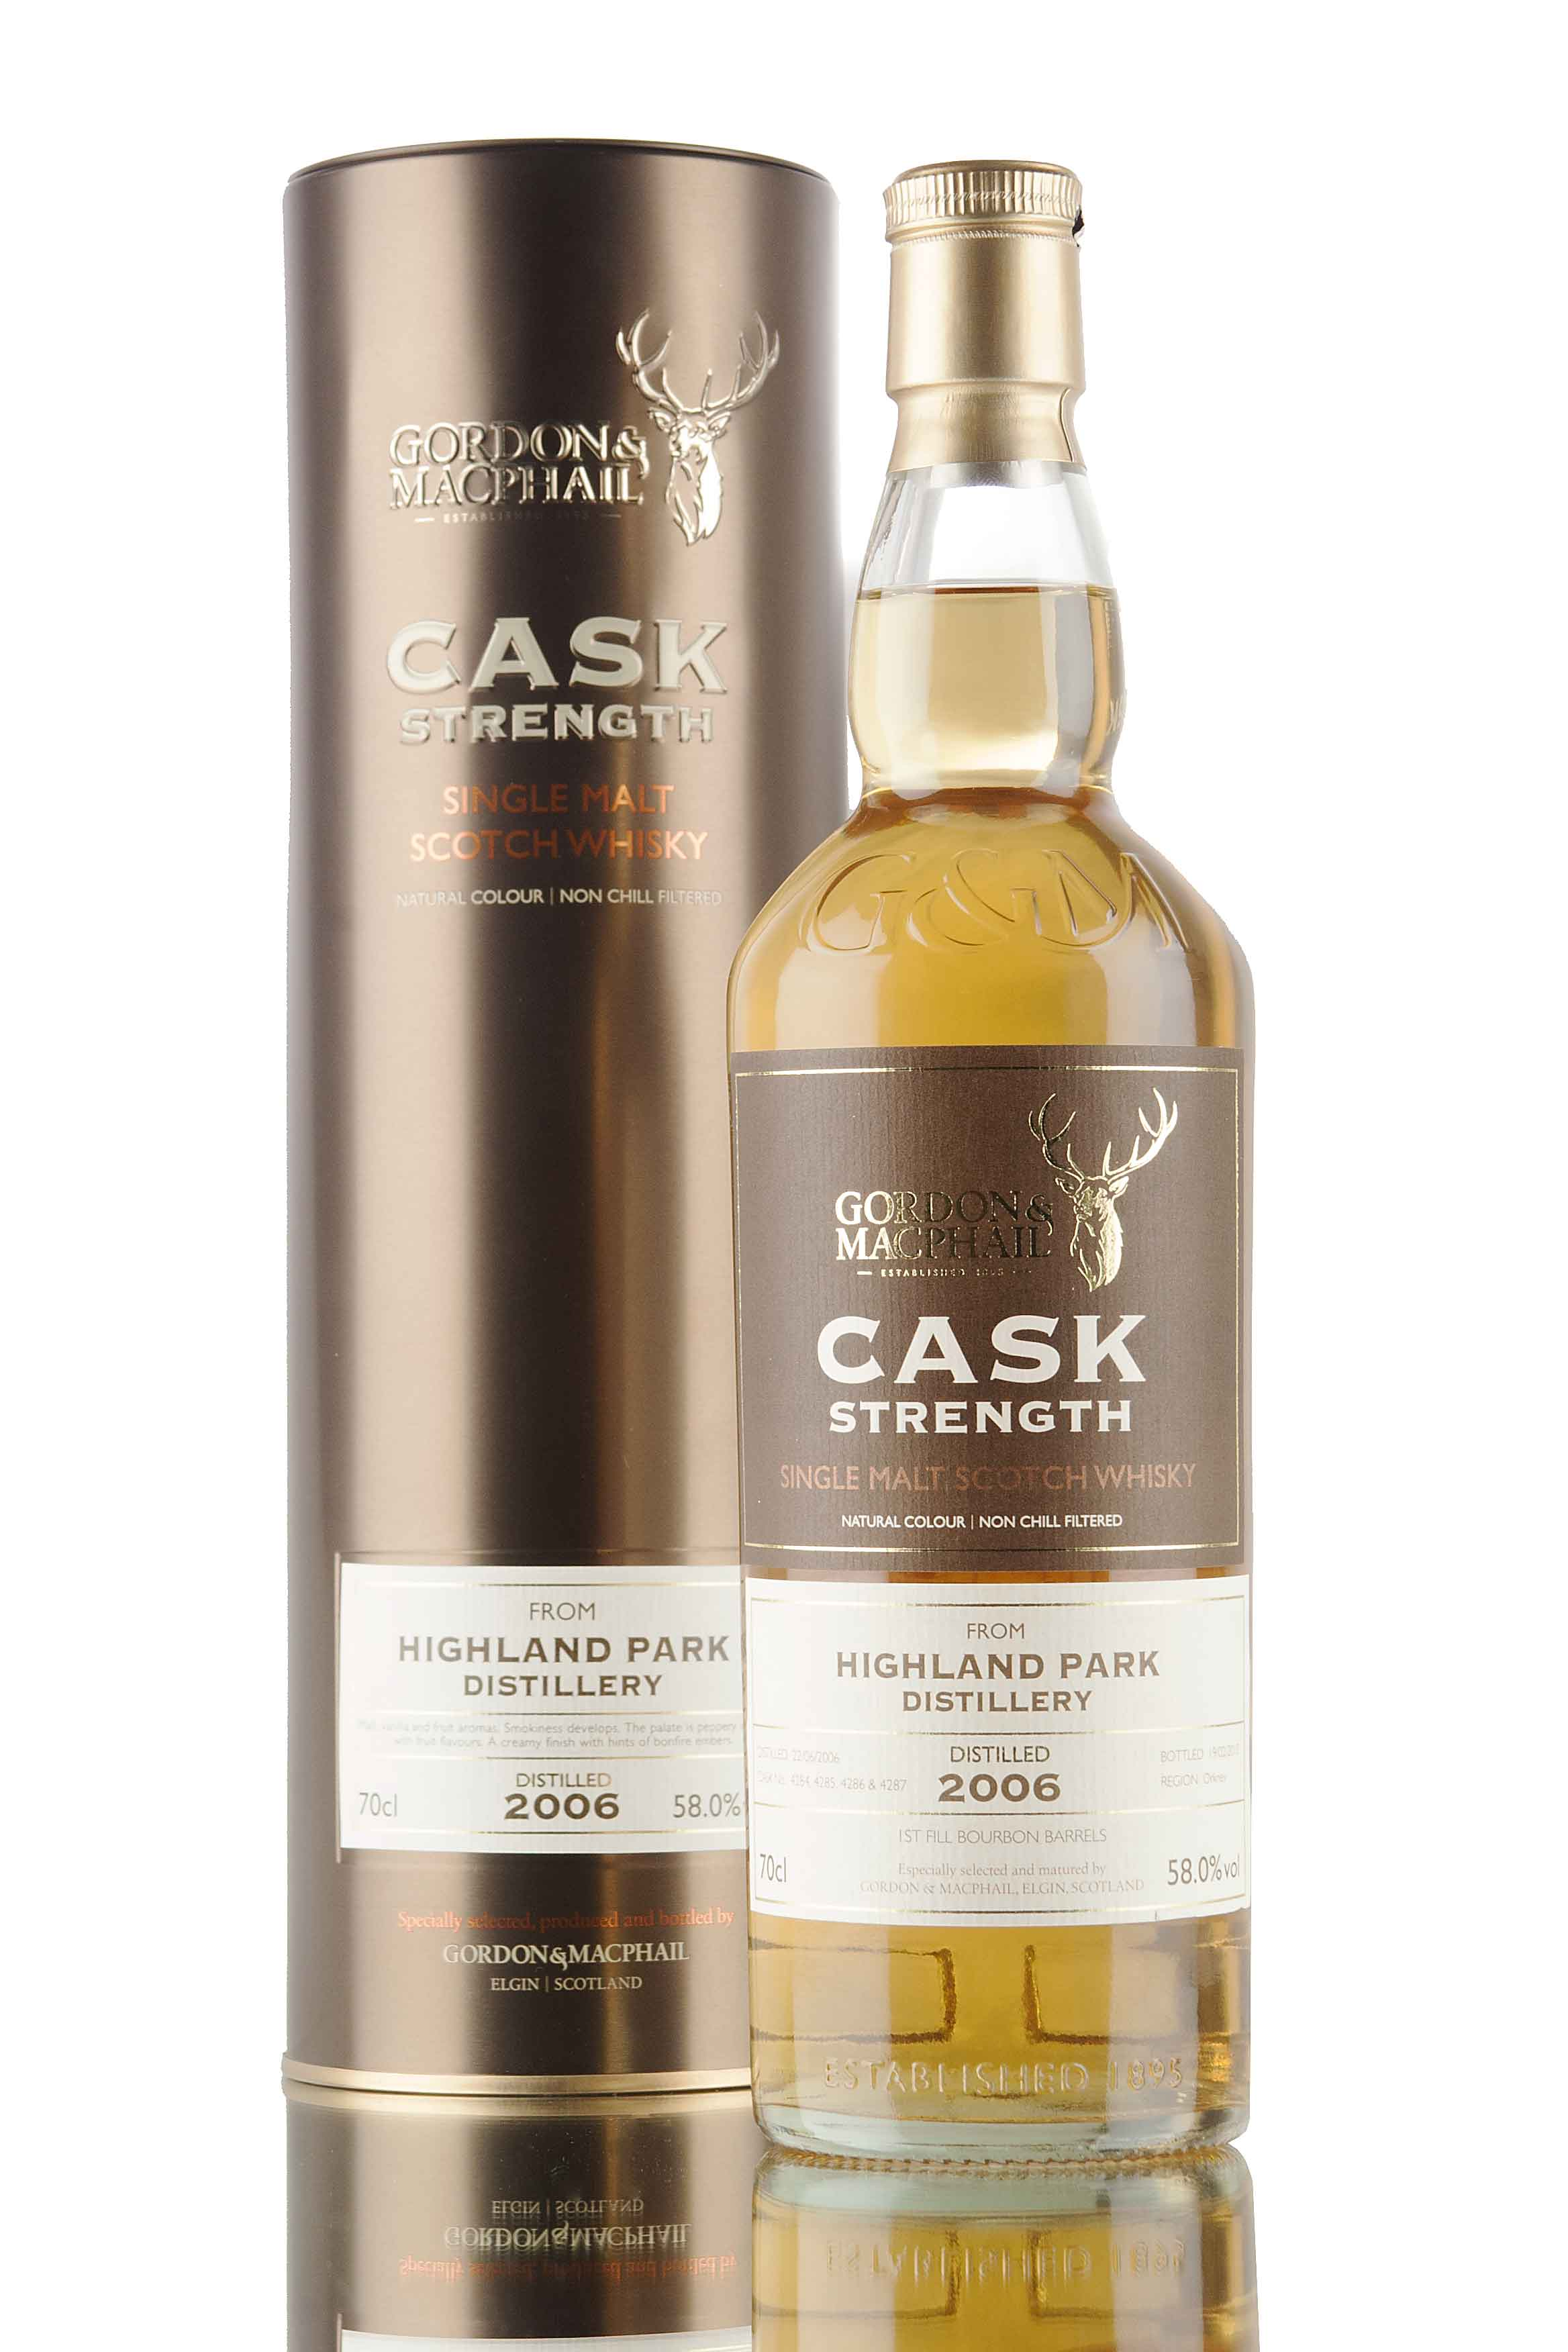 Highland Park 8 Year Old - 2006 / Cask Strength / G&M